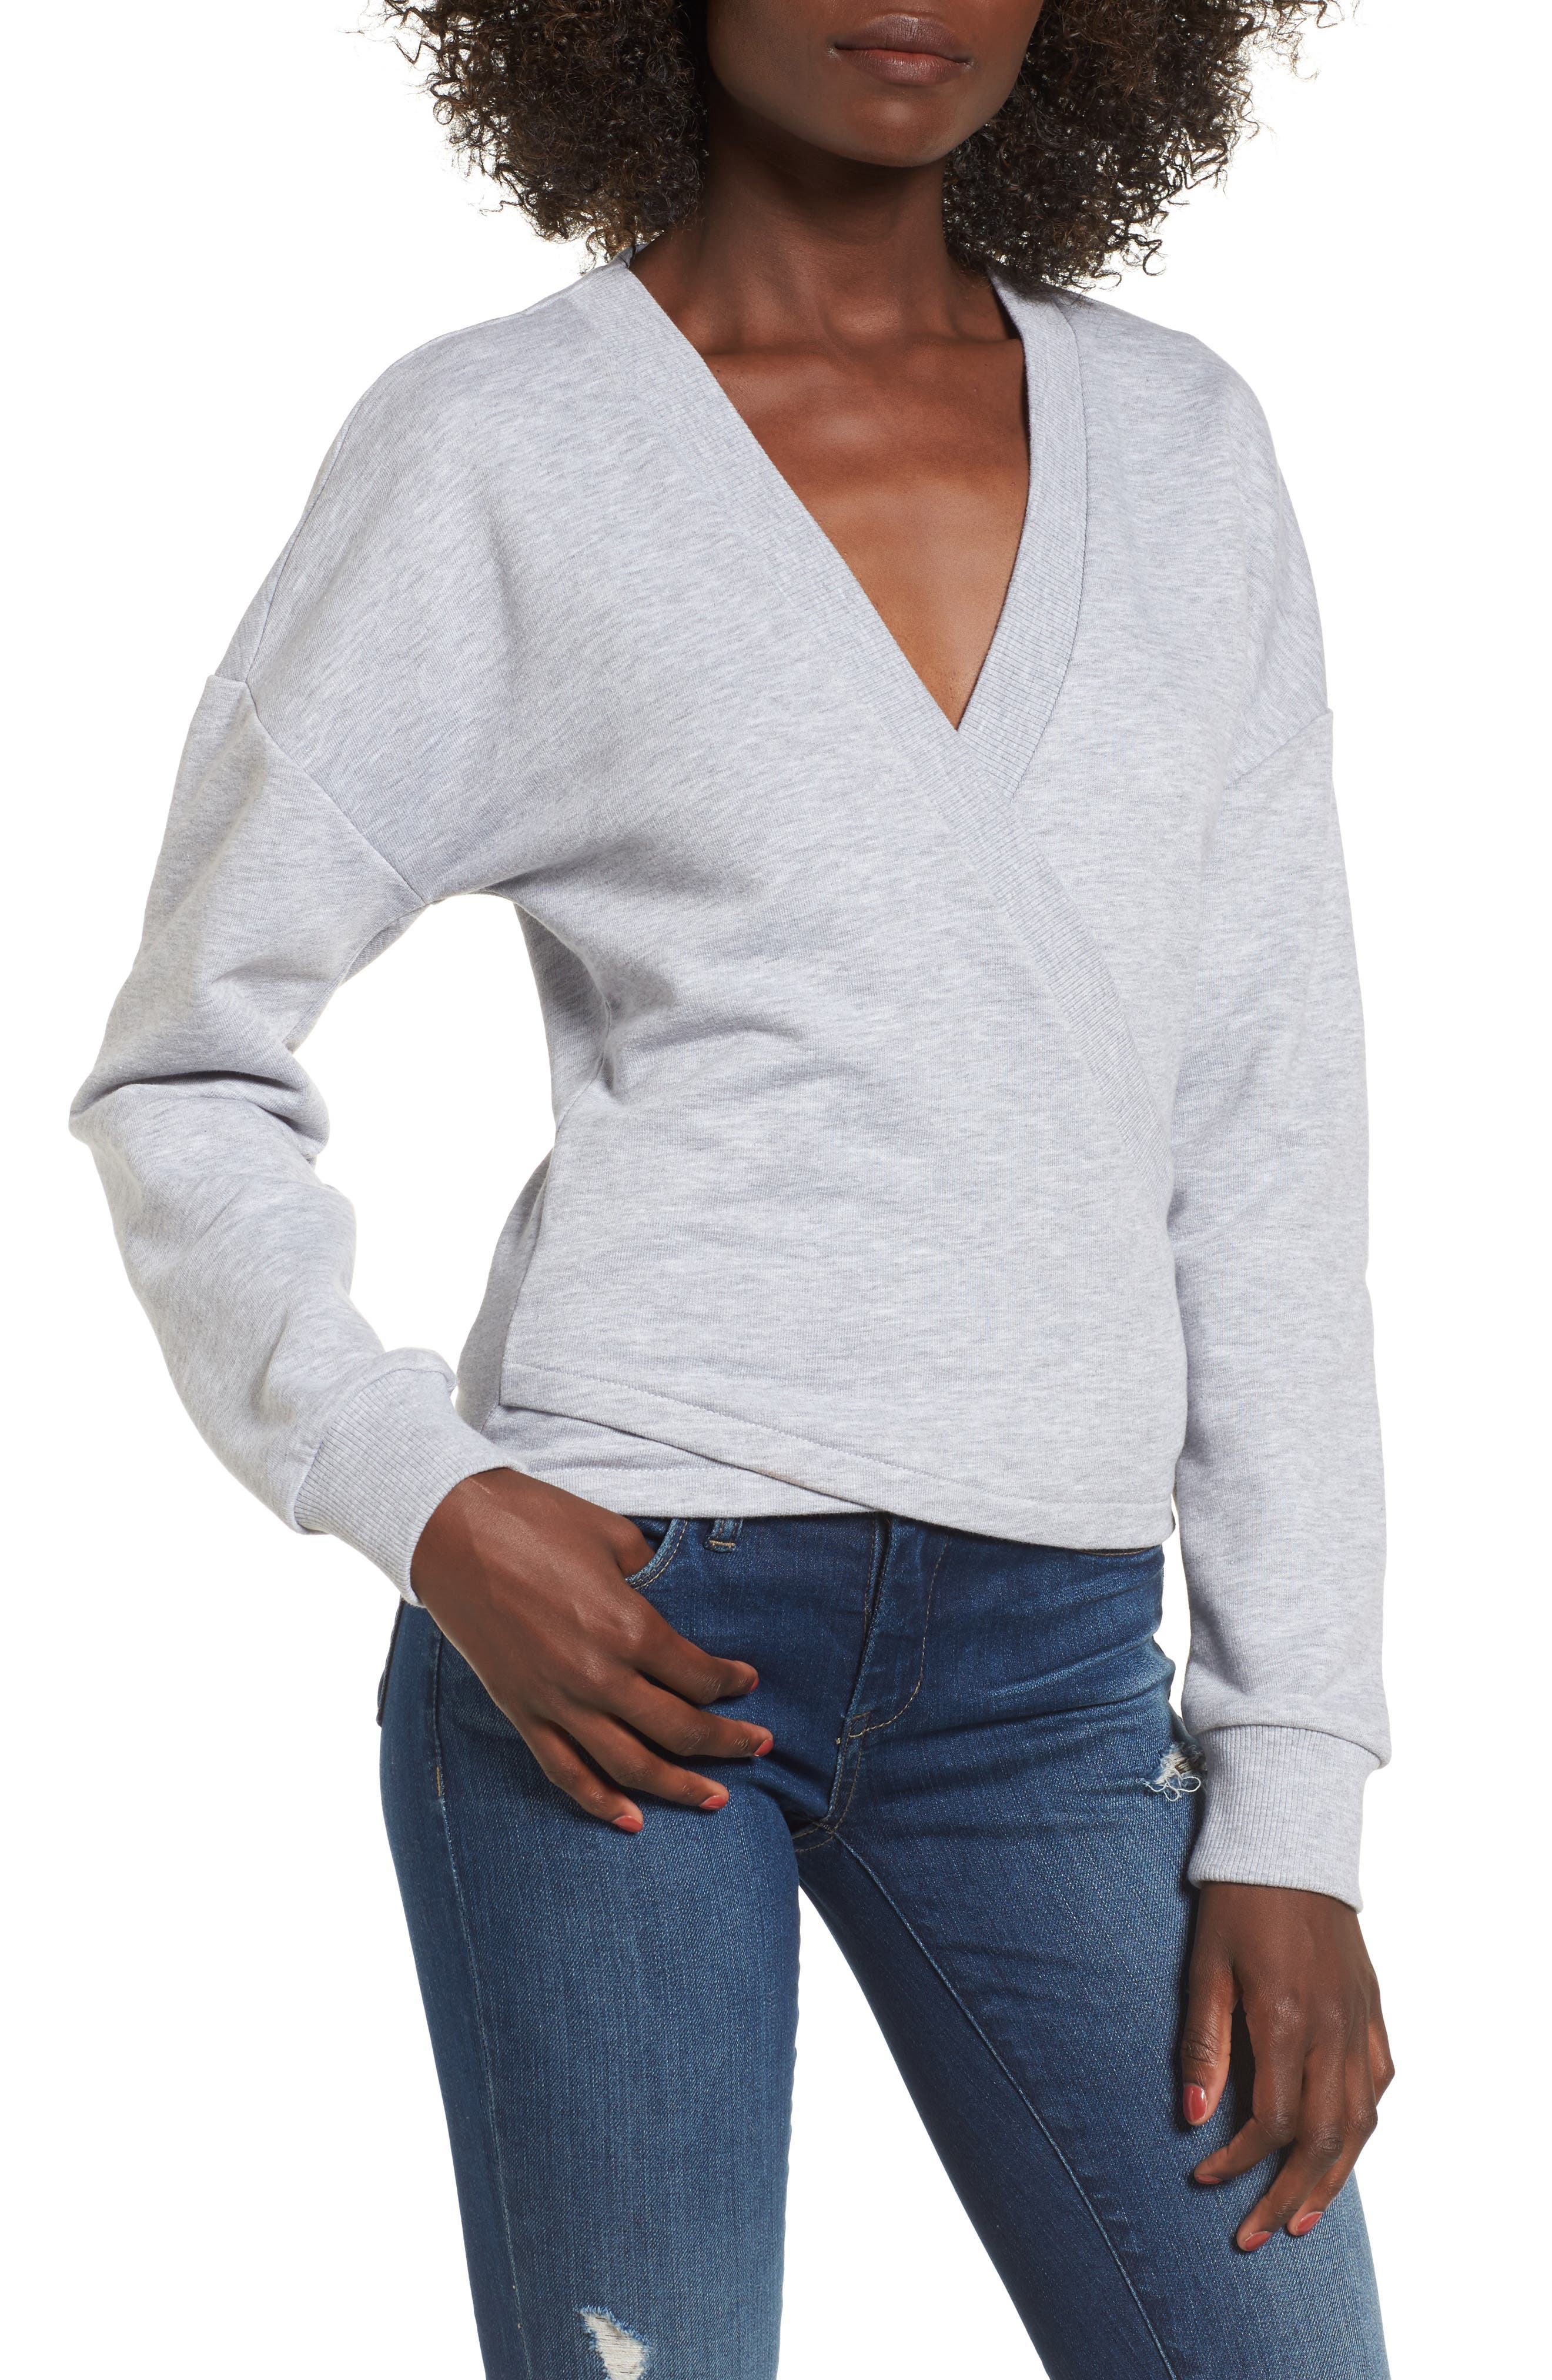 Teaser Faux Wrap Sweatshirt,                             Main thumbnail 1, color,                             020